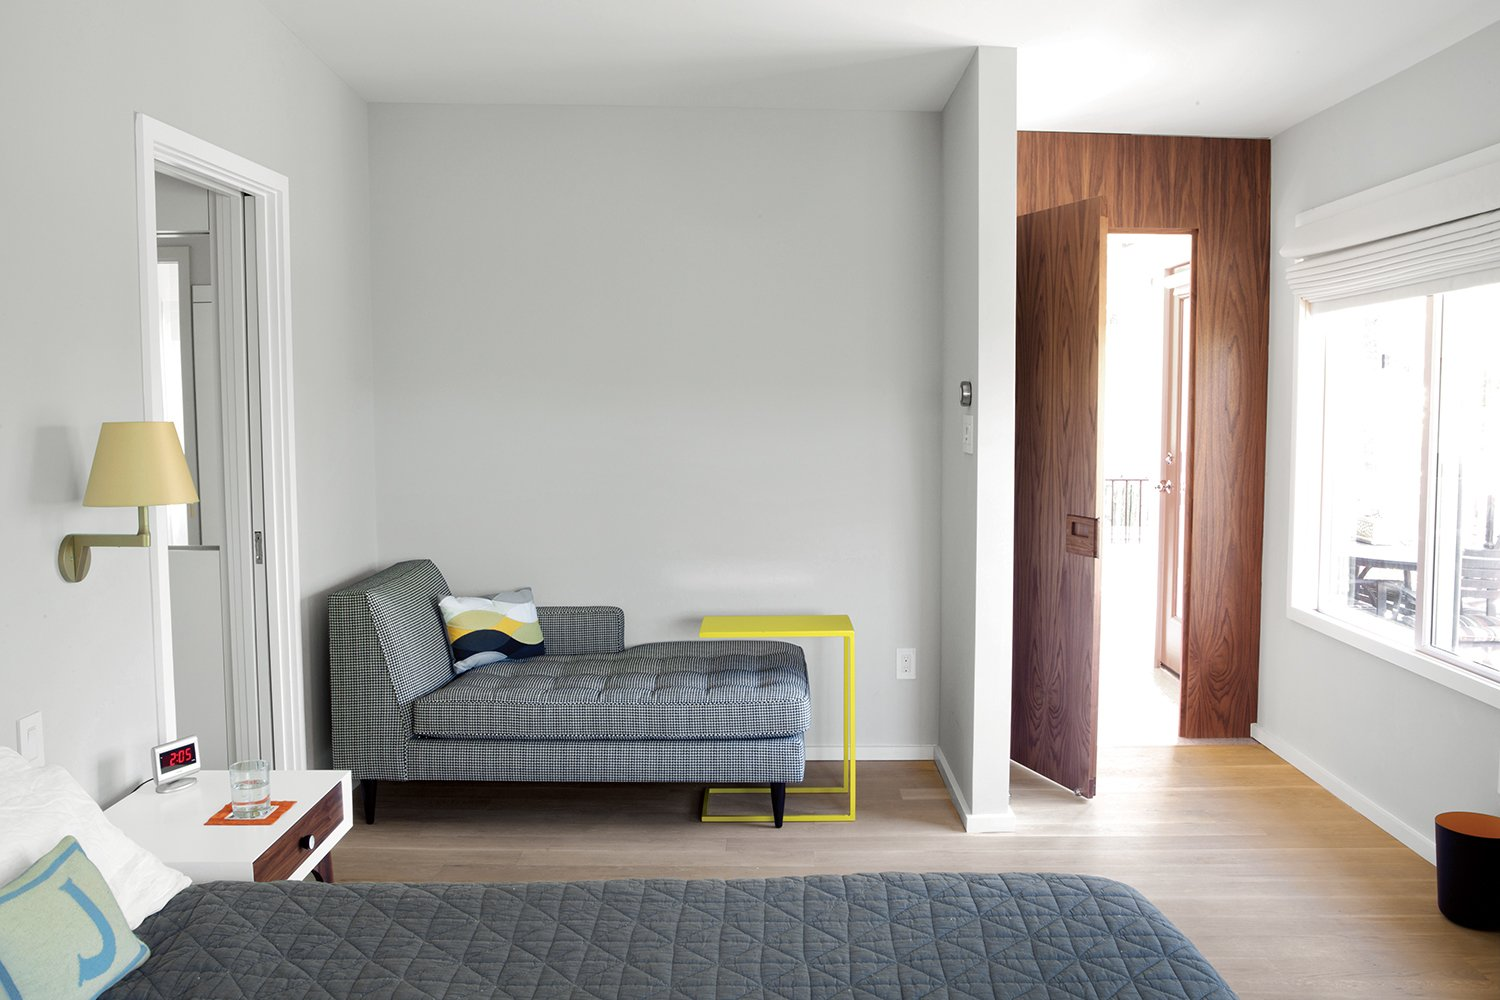 """Bedroom and Bed """"Life happens around architecture. And that's fine: A lot of houses get more beautiful when they age.""""   —Architect Rick Black  Photo 5 of 11 in A Renovated Midcentury Gem in Austin"""